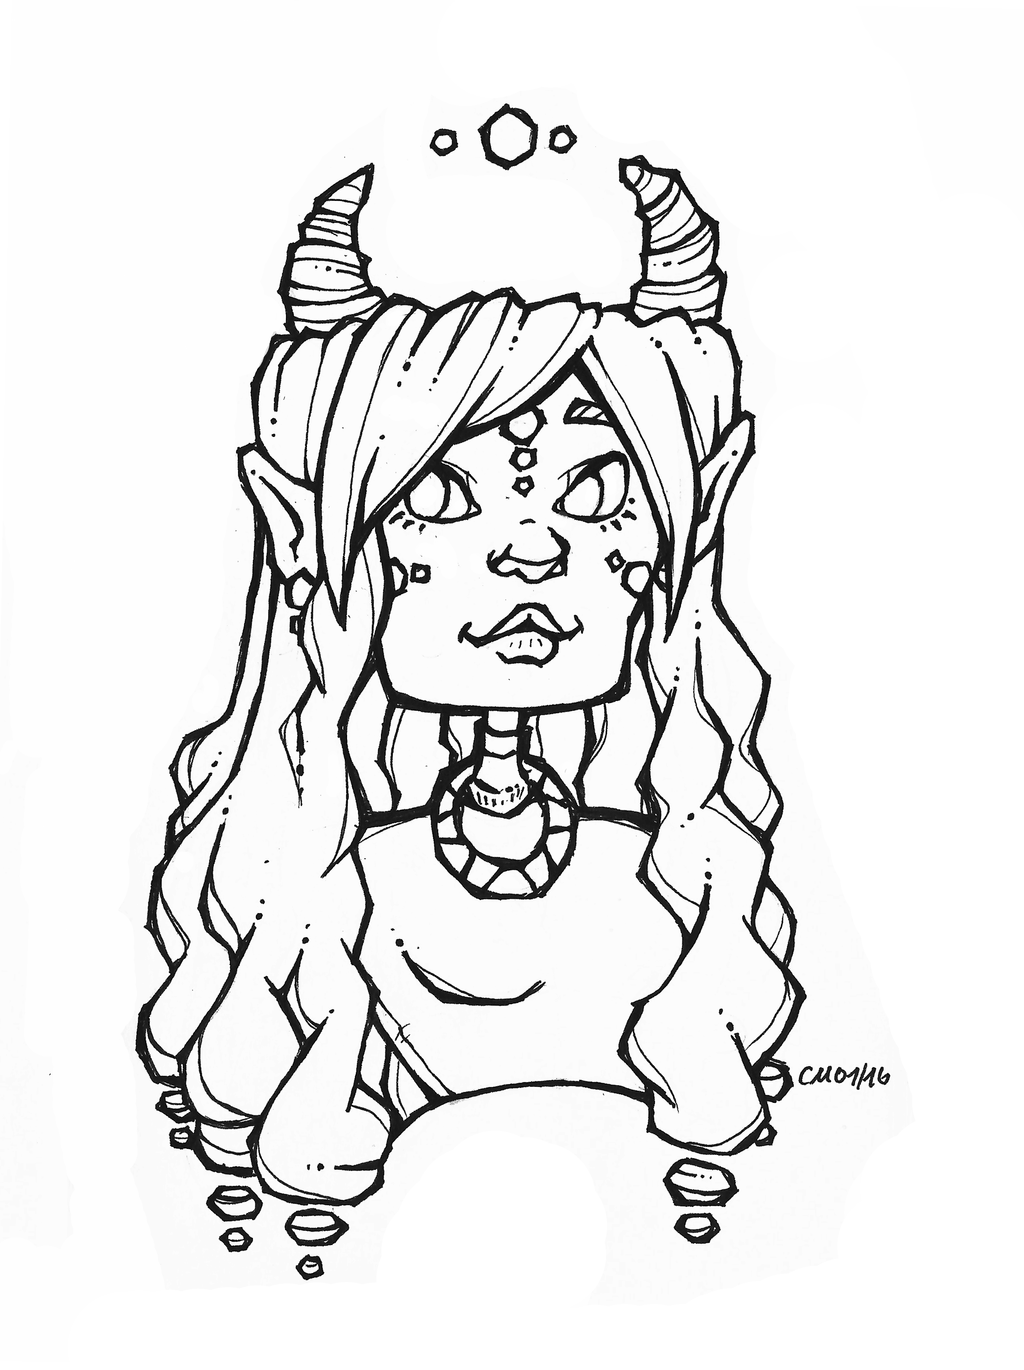 trapezoid coloring page - 25 portrait trapezoid down by captainmetal on deviantart